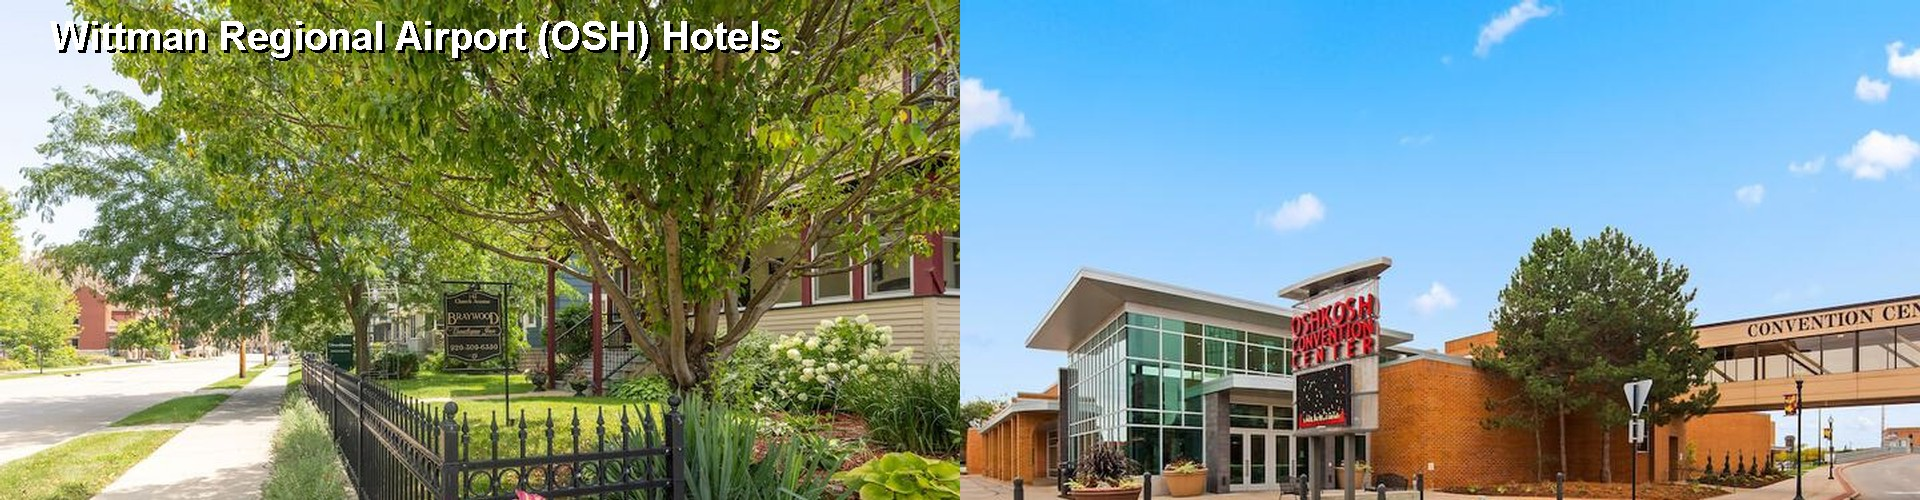 5 Best Hotels near Wittman Regional Airport (OSH)